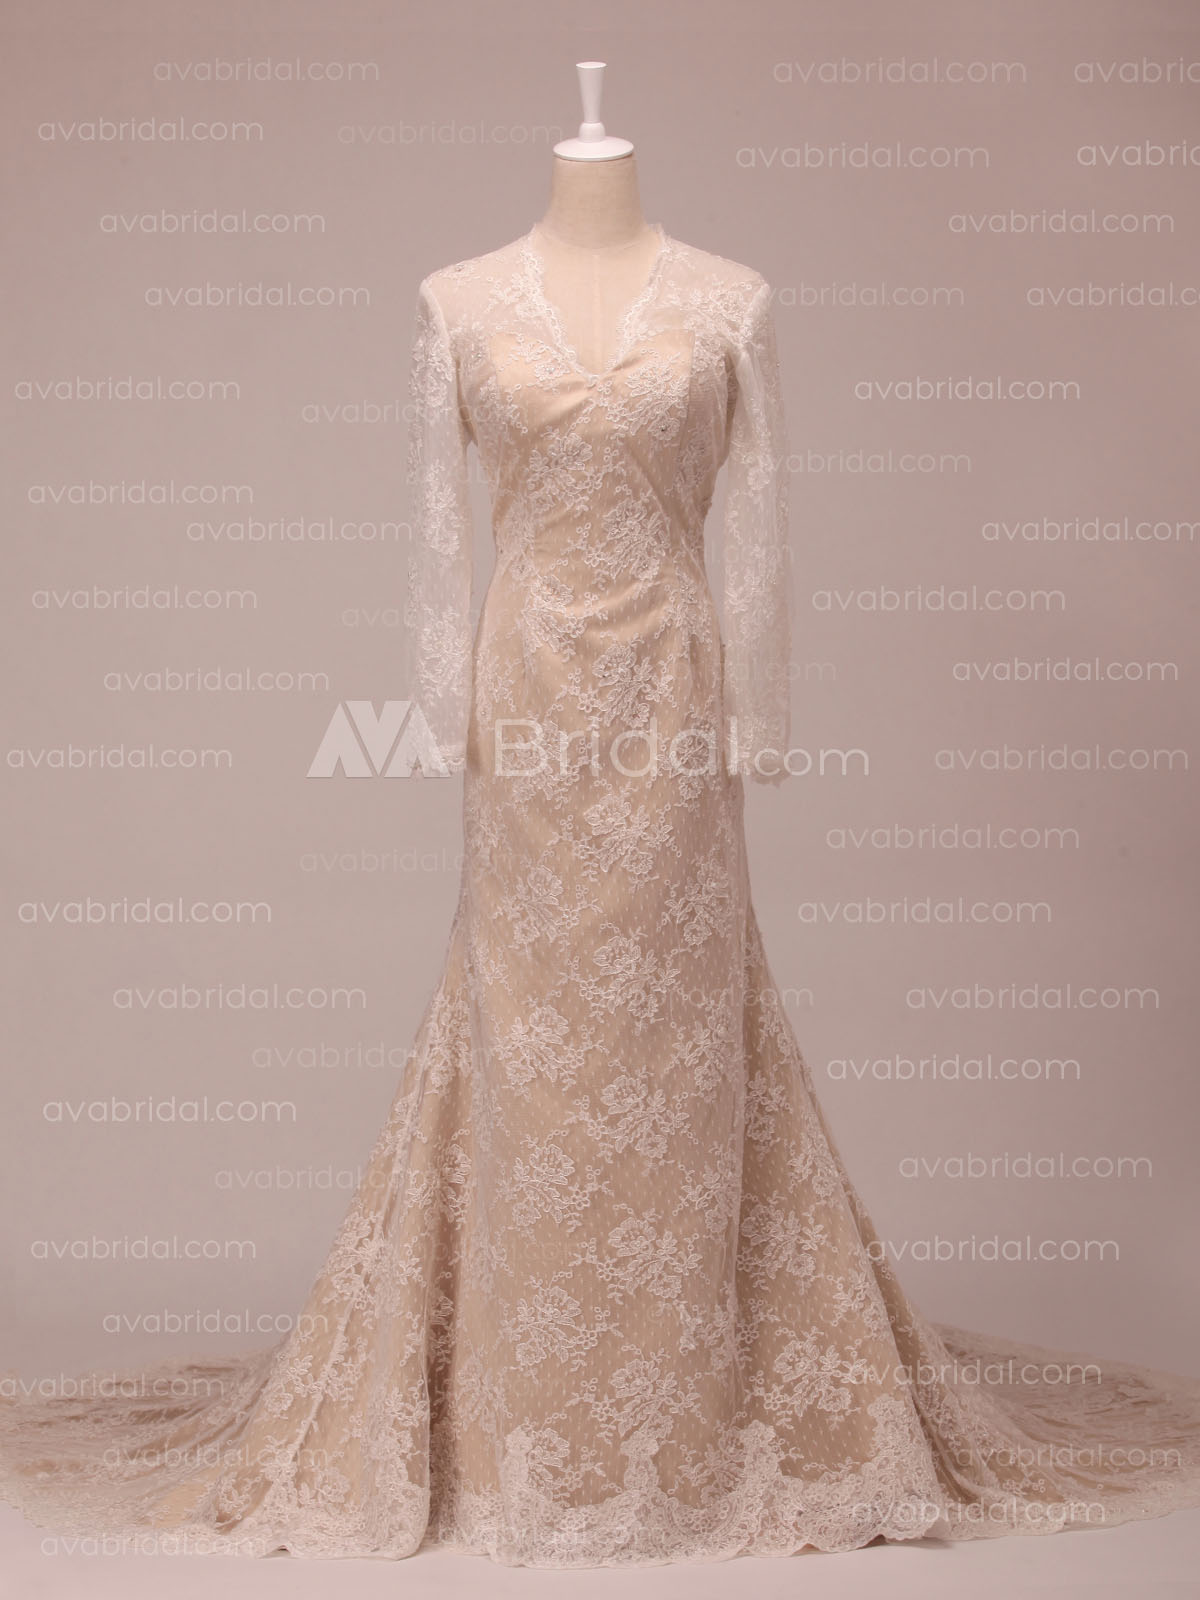 Lace Long Sleeved Wedding Dress - Victoria - Front